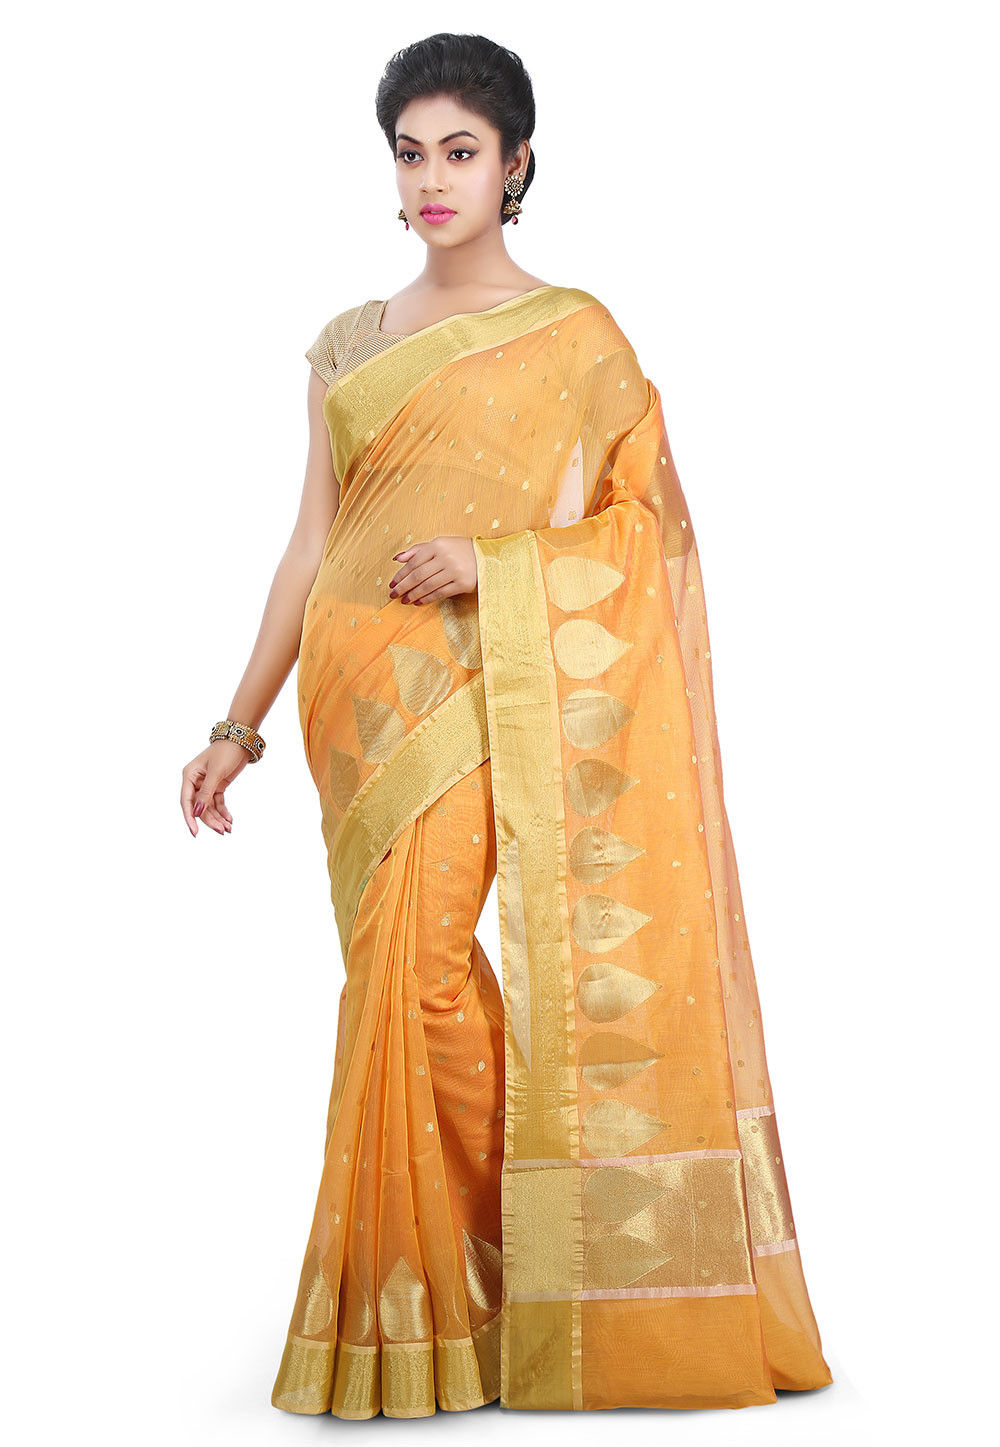 Woven Chanderi Silk Saree in Mustard